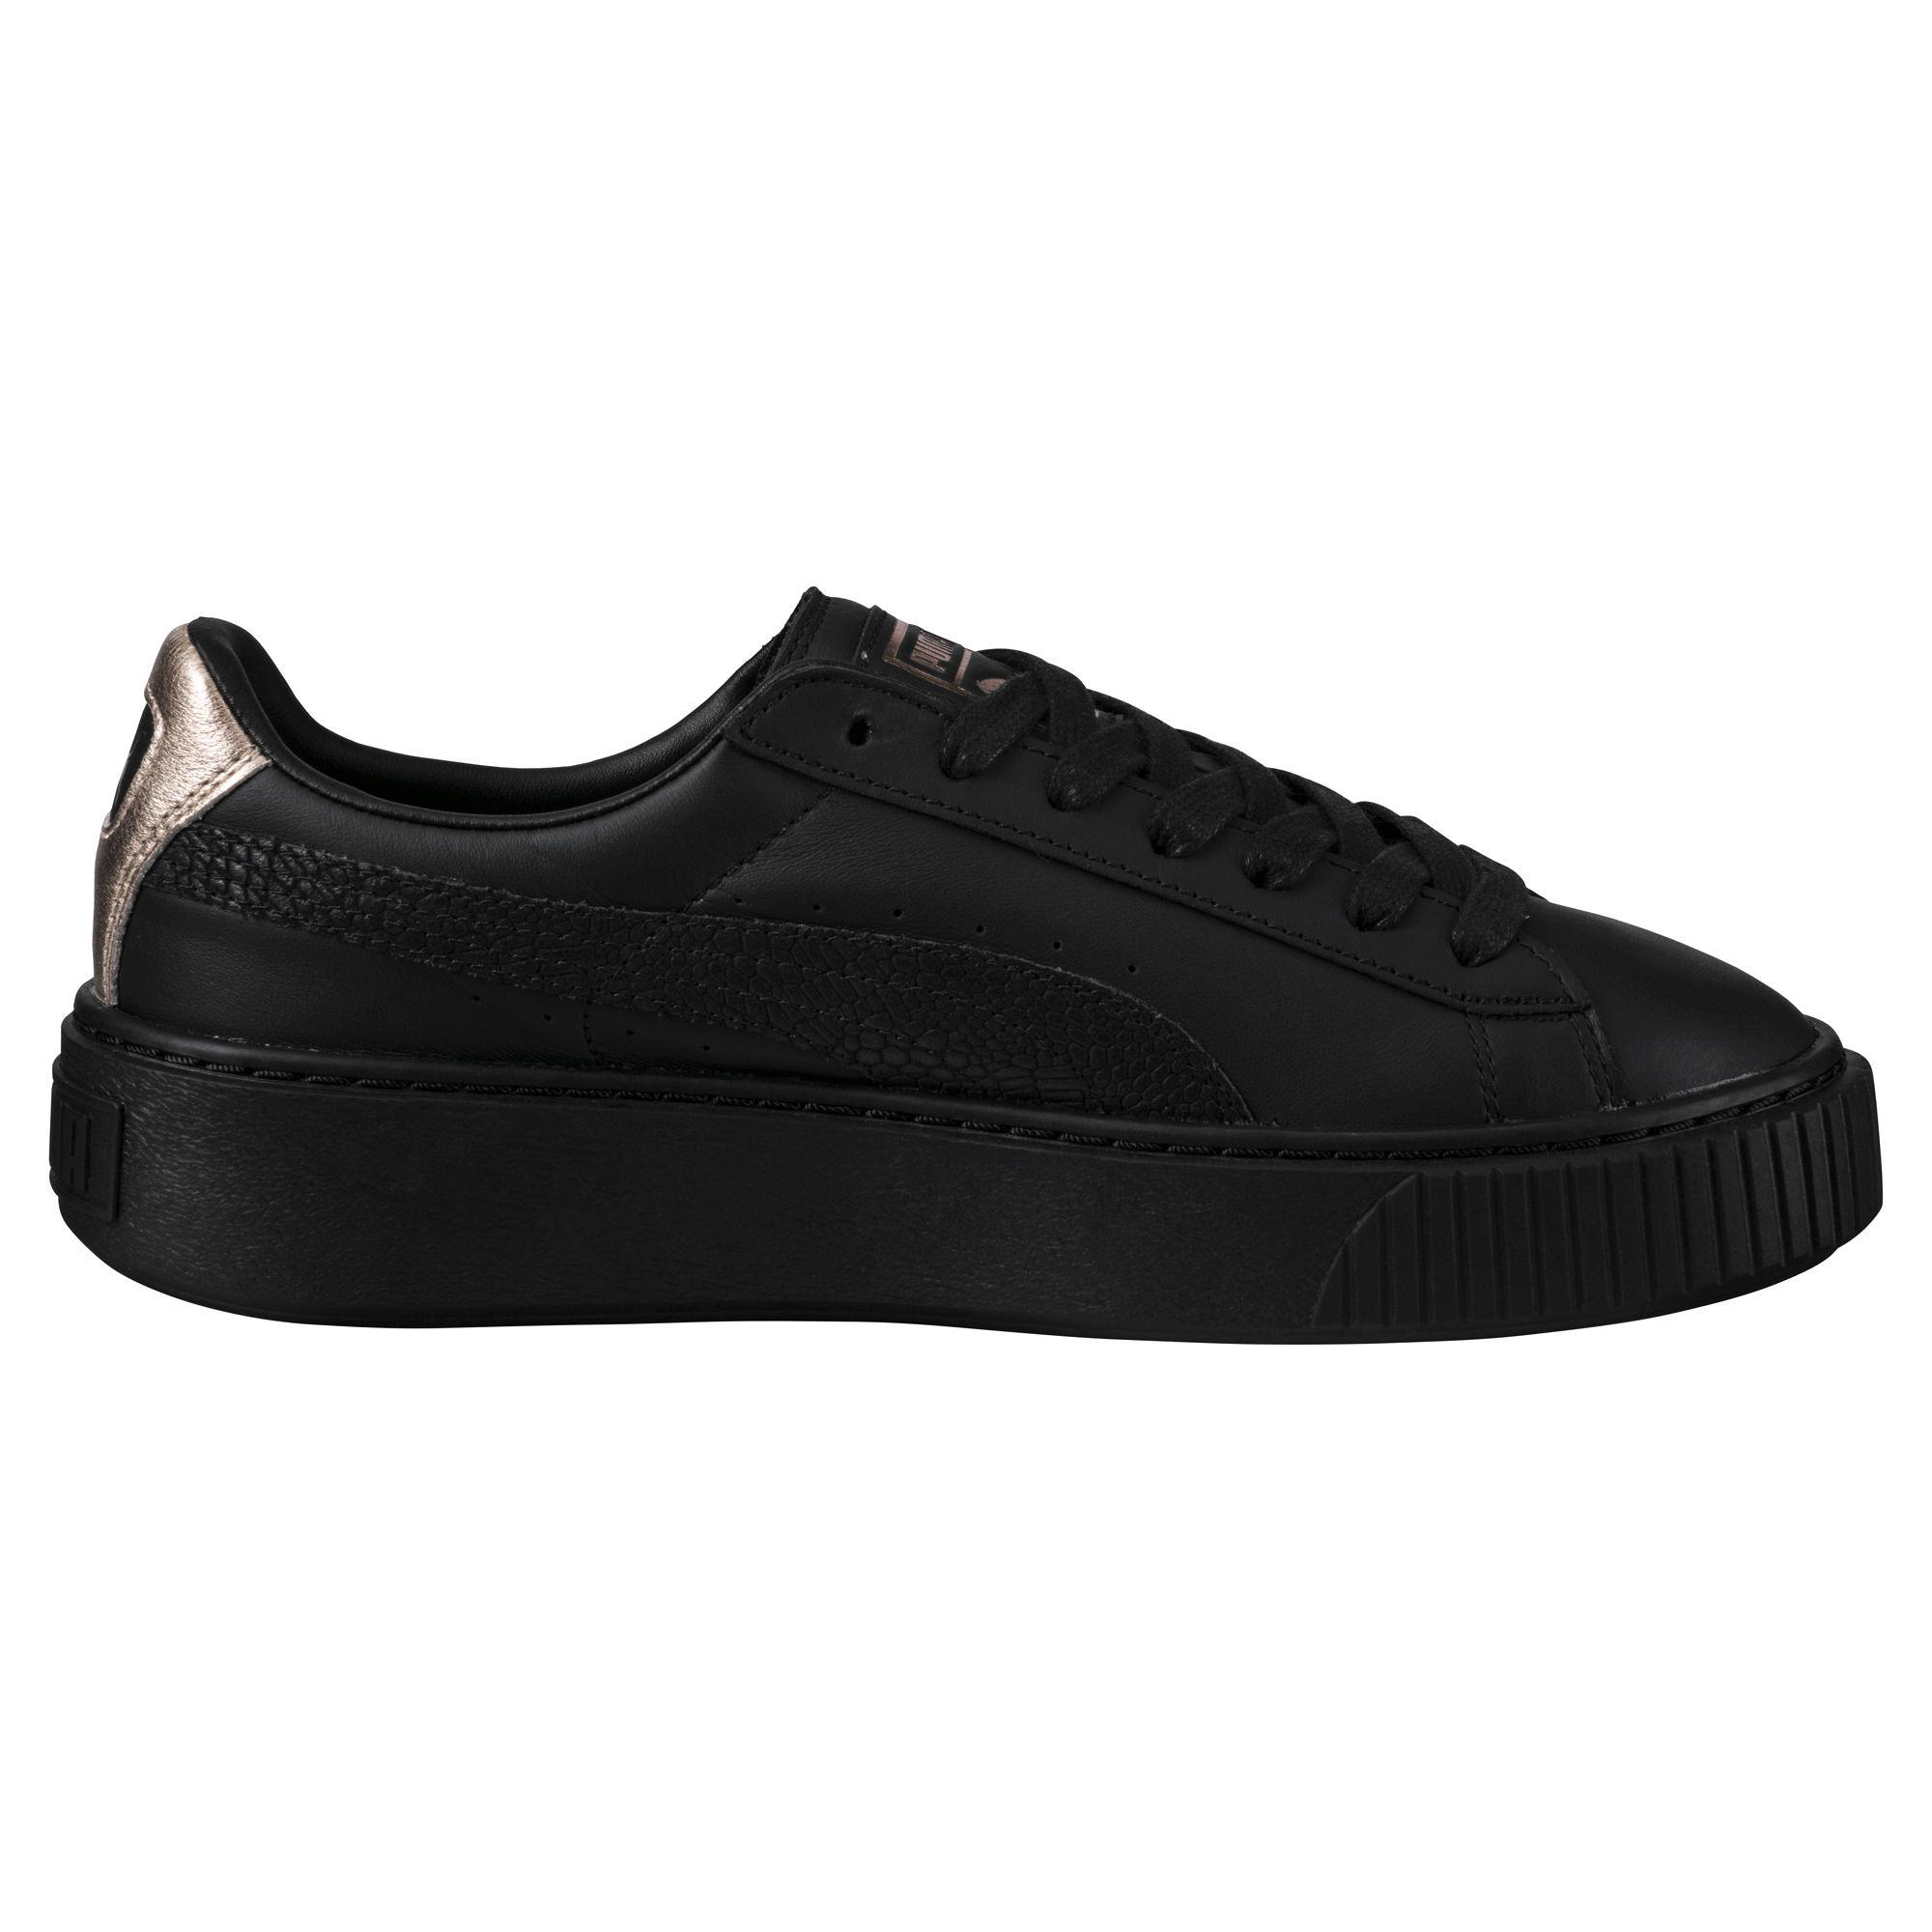 6c5685207810 Puma Shoes Basket Platform Euphoria Rg Woman Puma Black-rose Gold ...